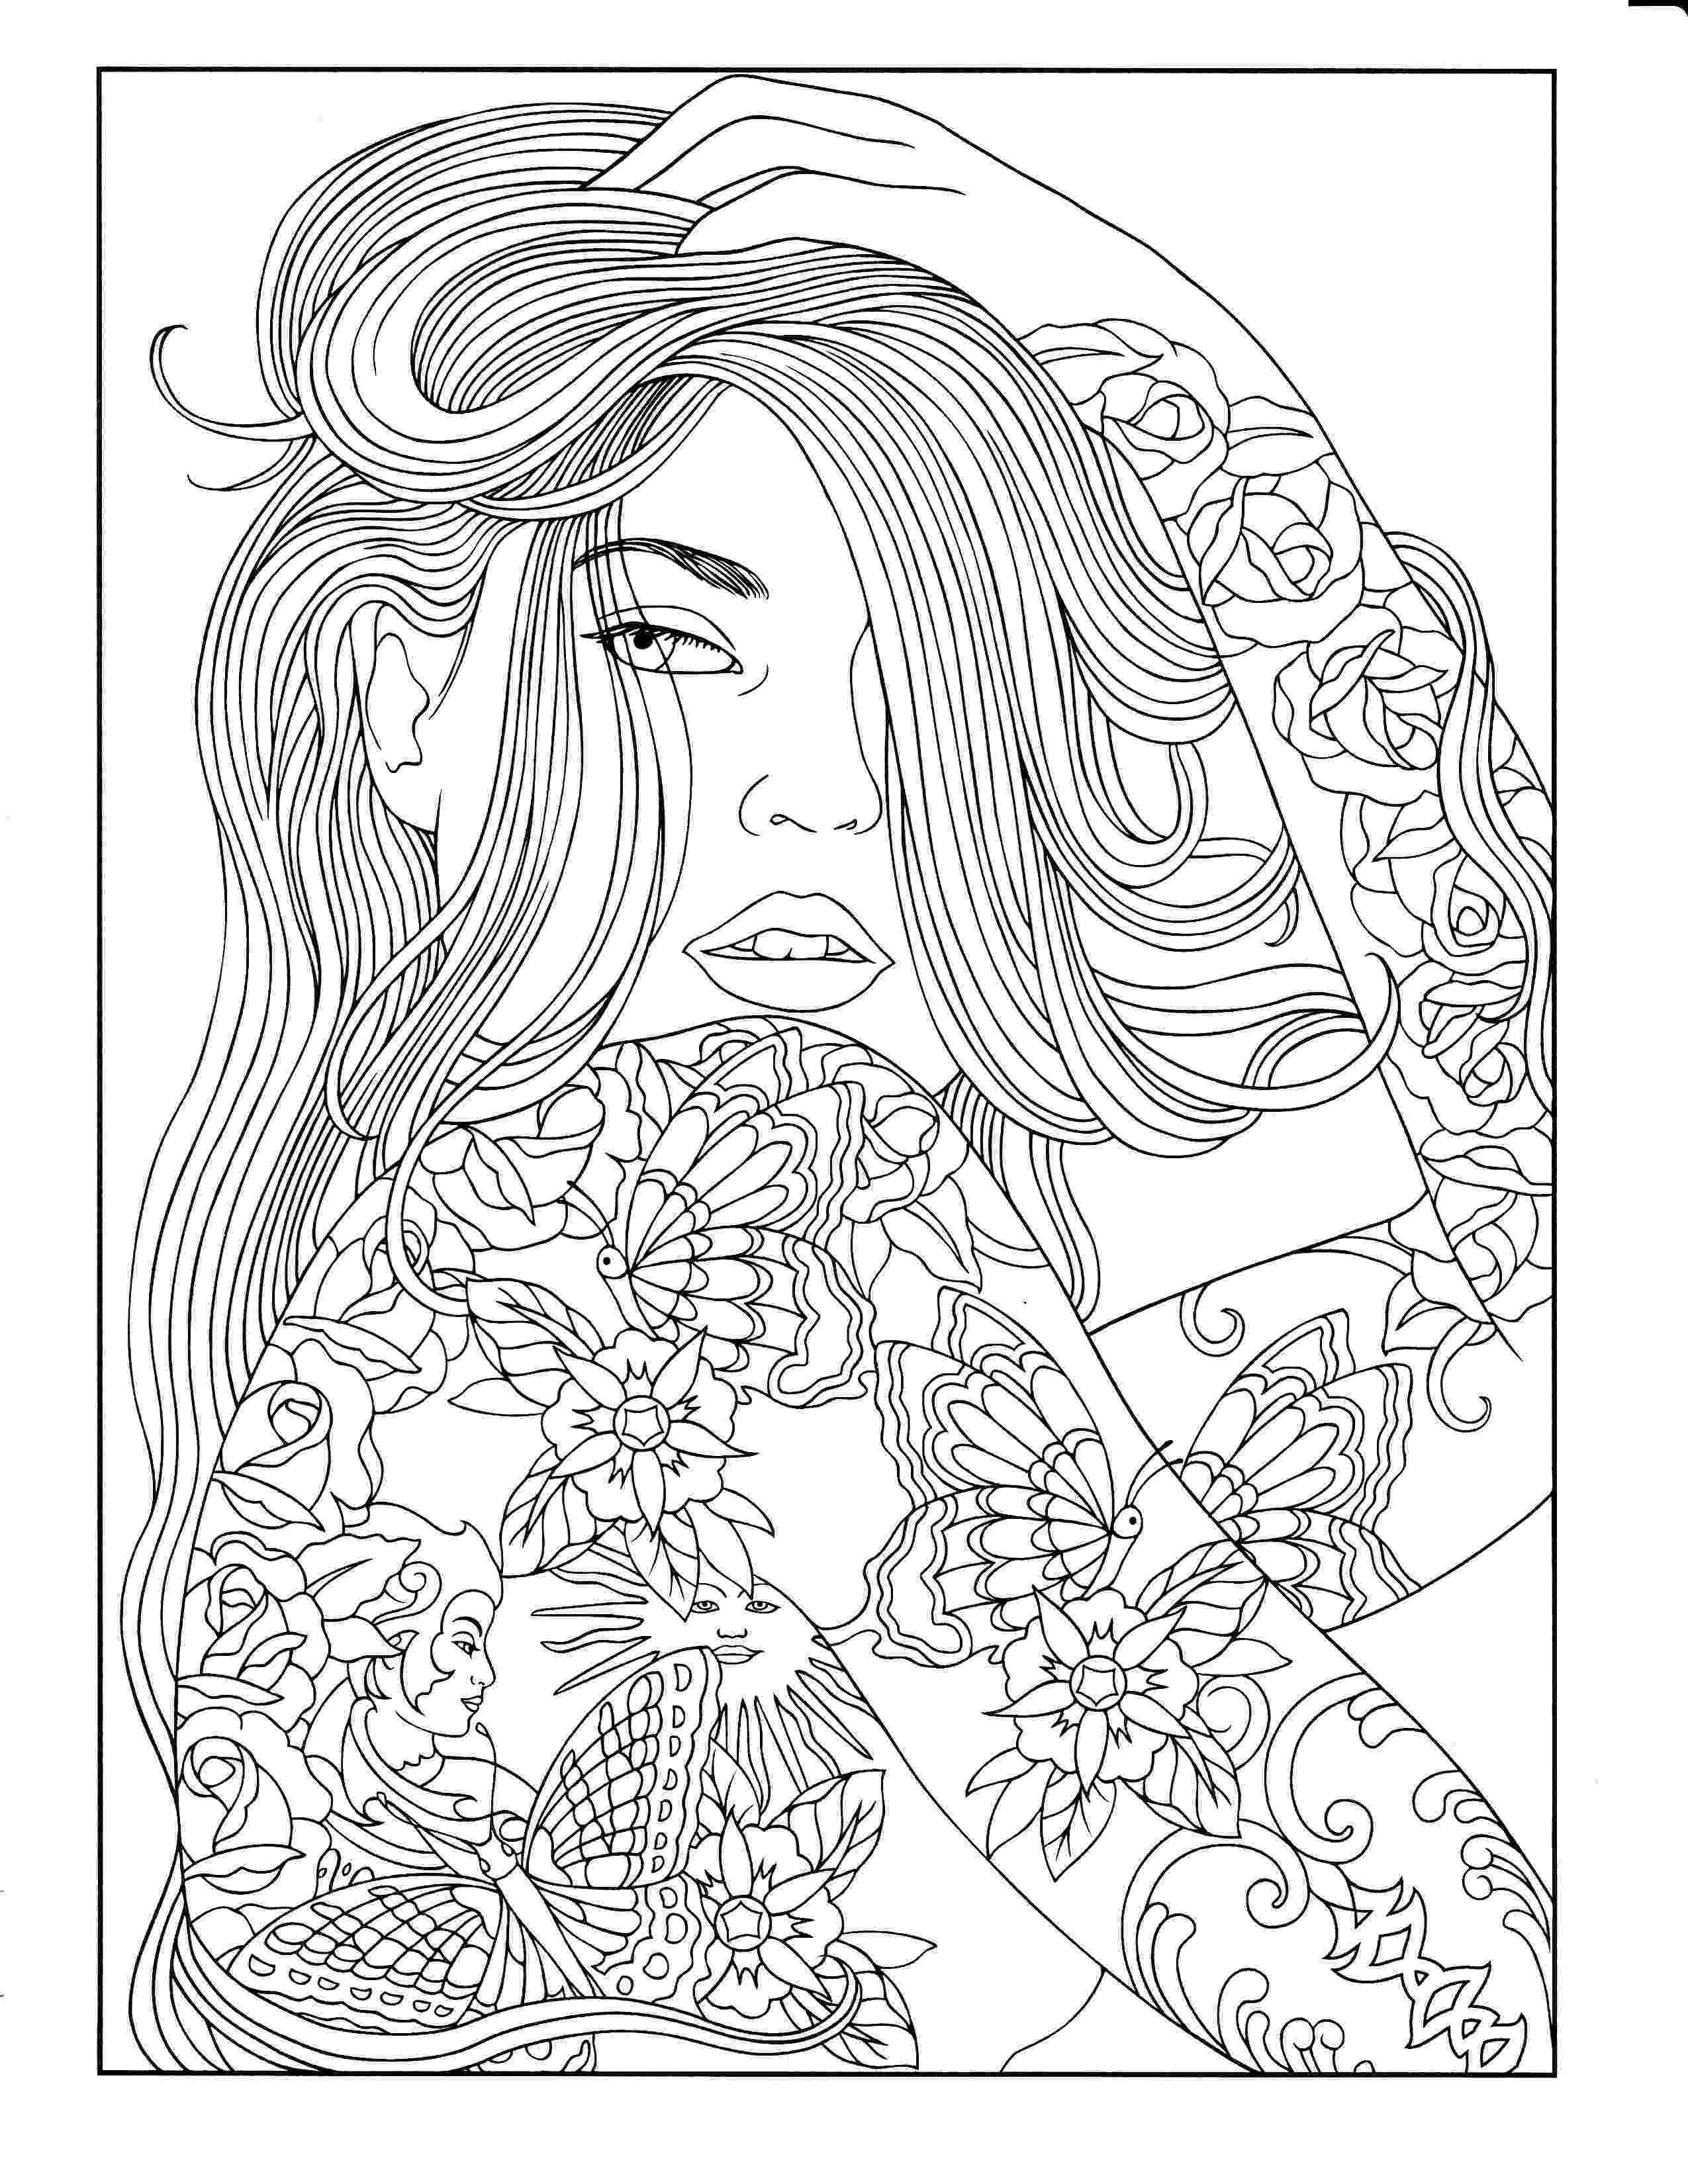 coloring pictures of people beautiful taylor swift close up coloring pages hellokidscom of people coloring pictures